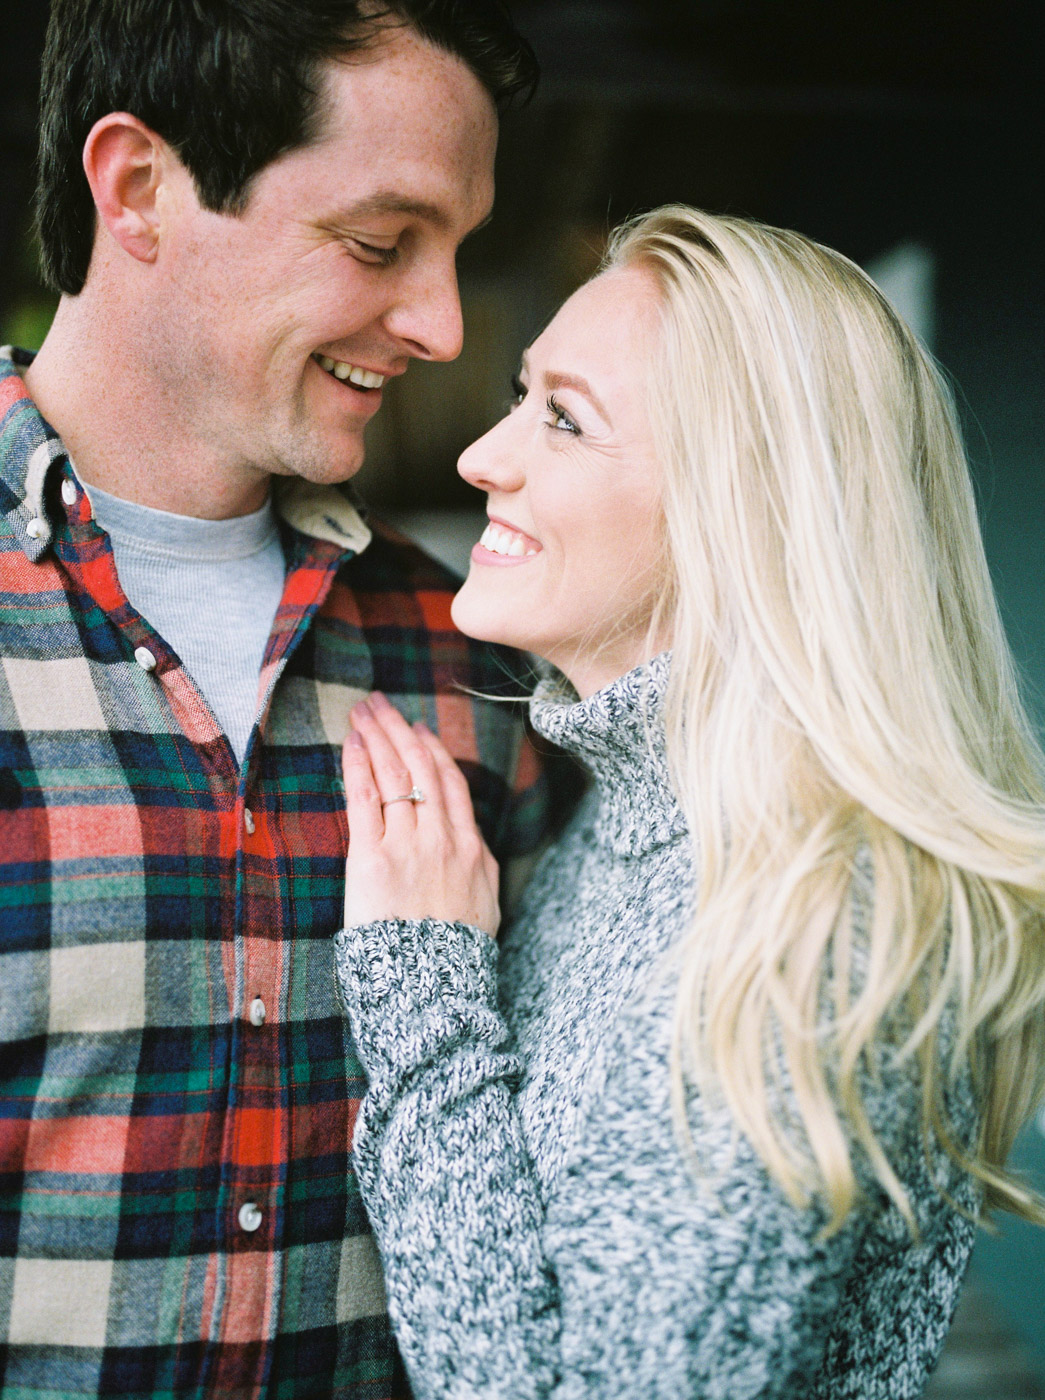 Haley & Joe Engagement Film 2016 Web-20.jpg